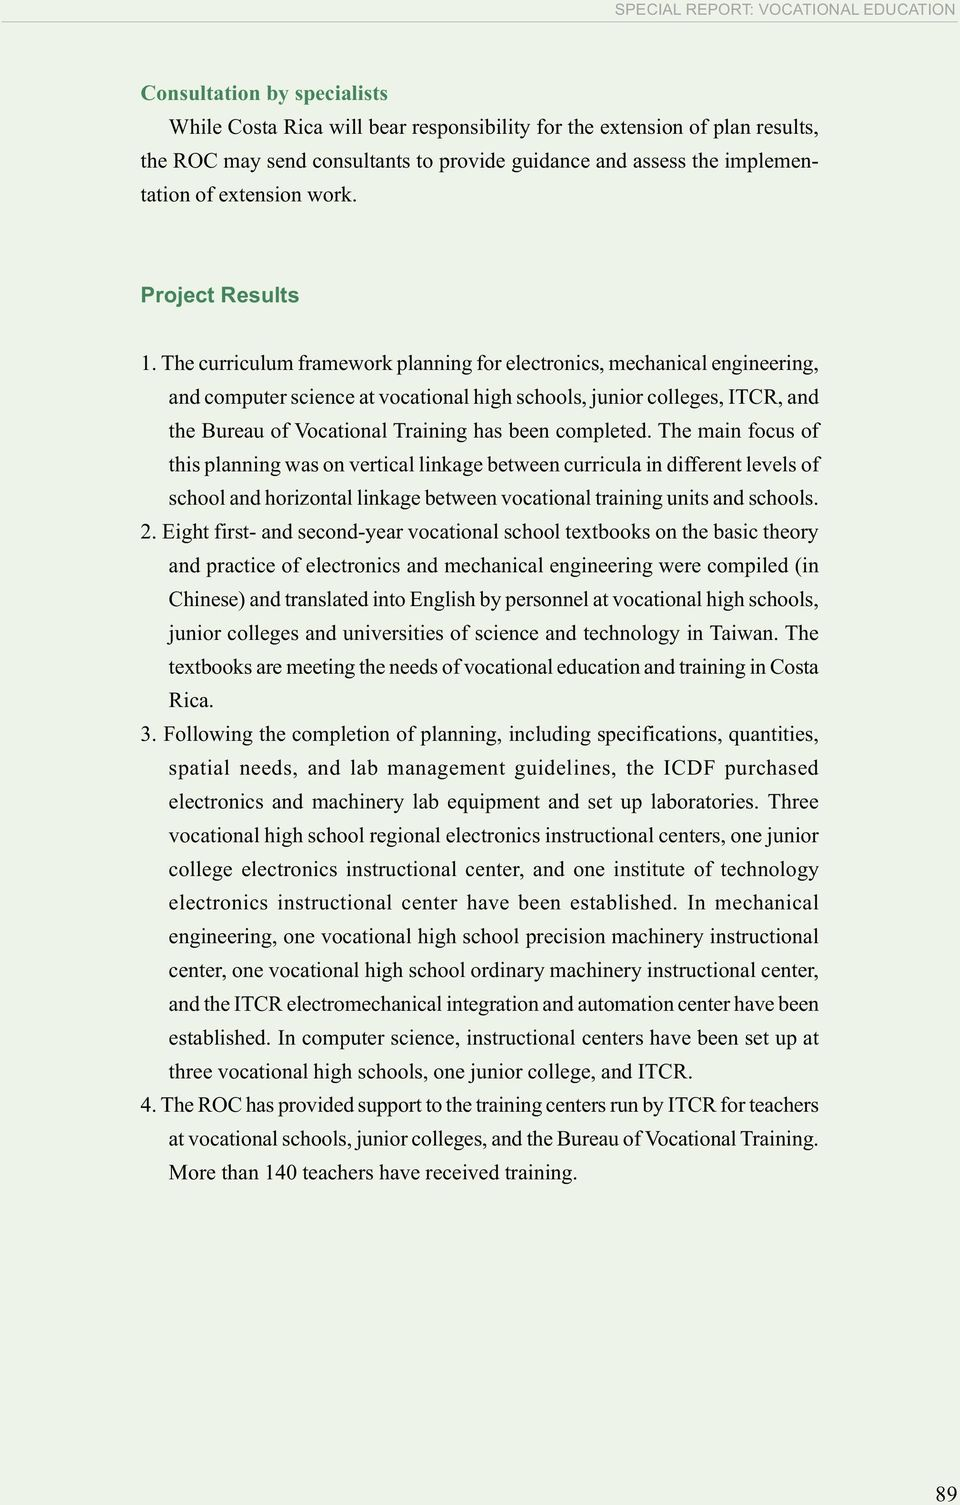 The curriculum framework planning for electronics, mechanical engineering, and computer science at vocational high schools, junior colleges, ITCR, and the Bureau of Vocational Training has been